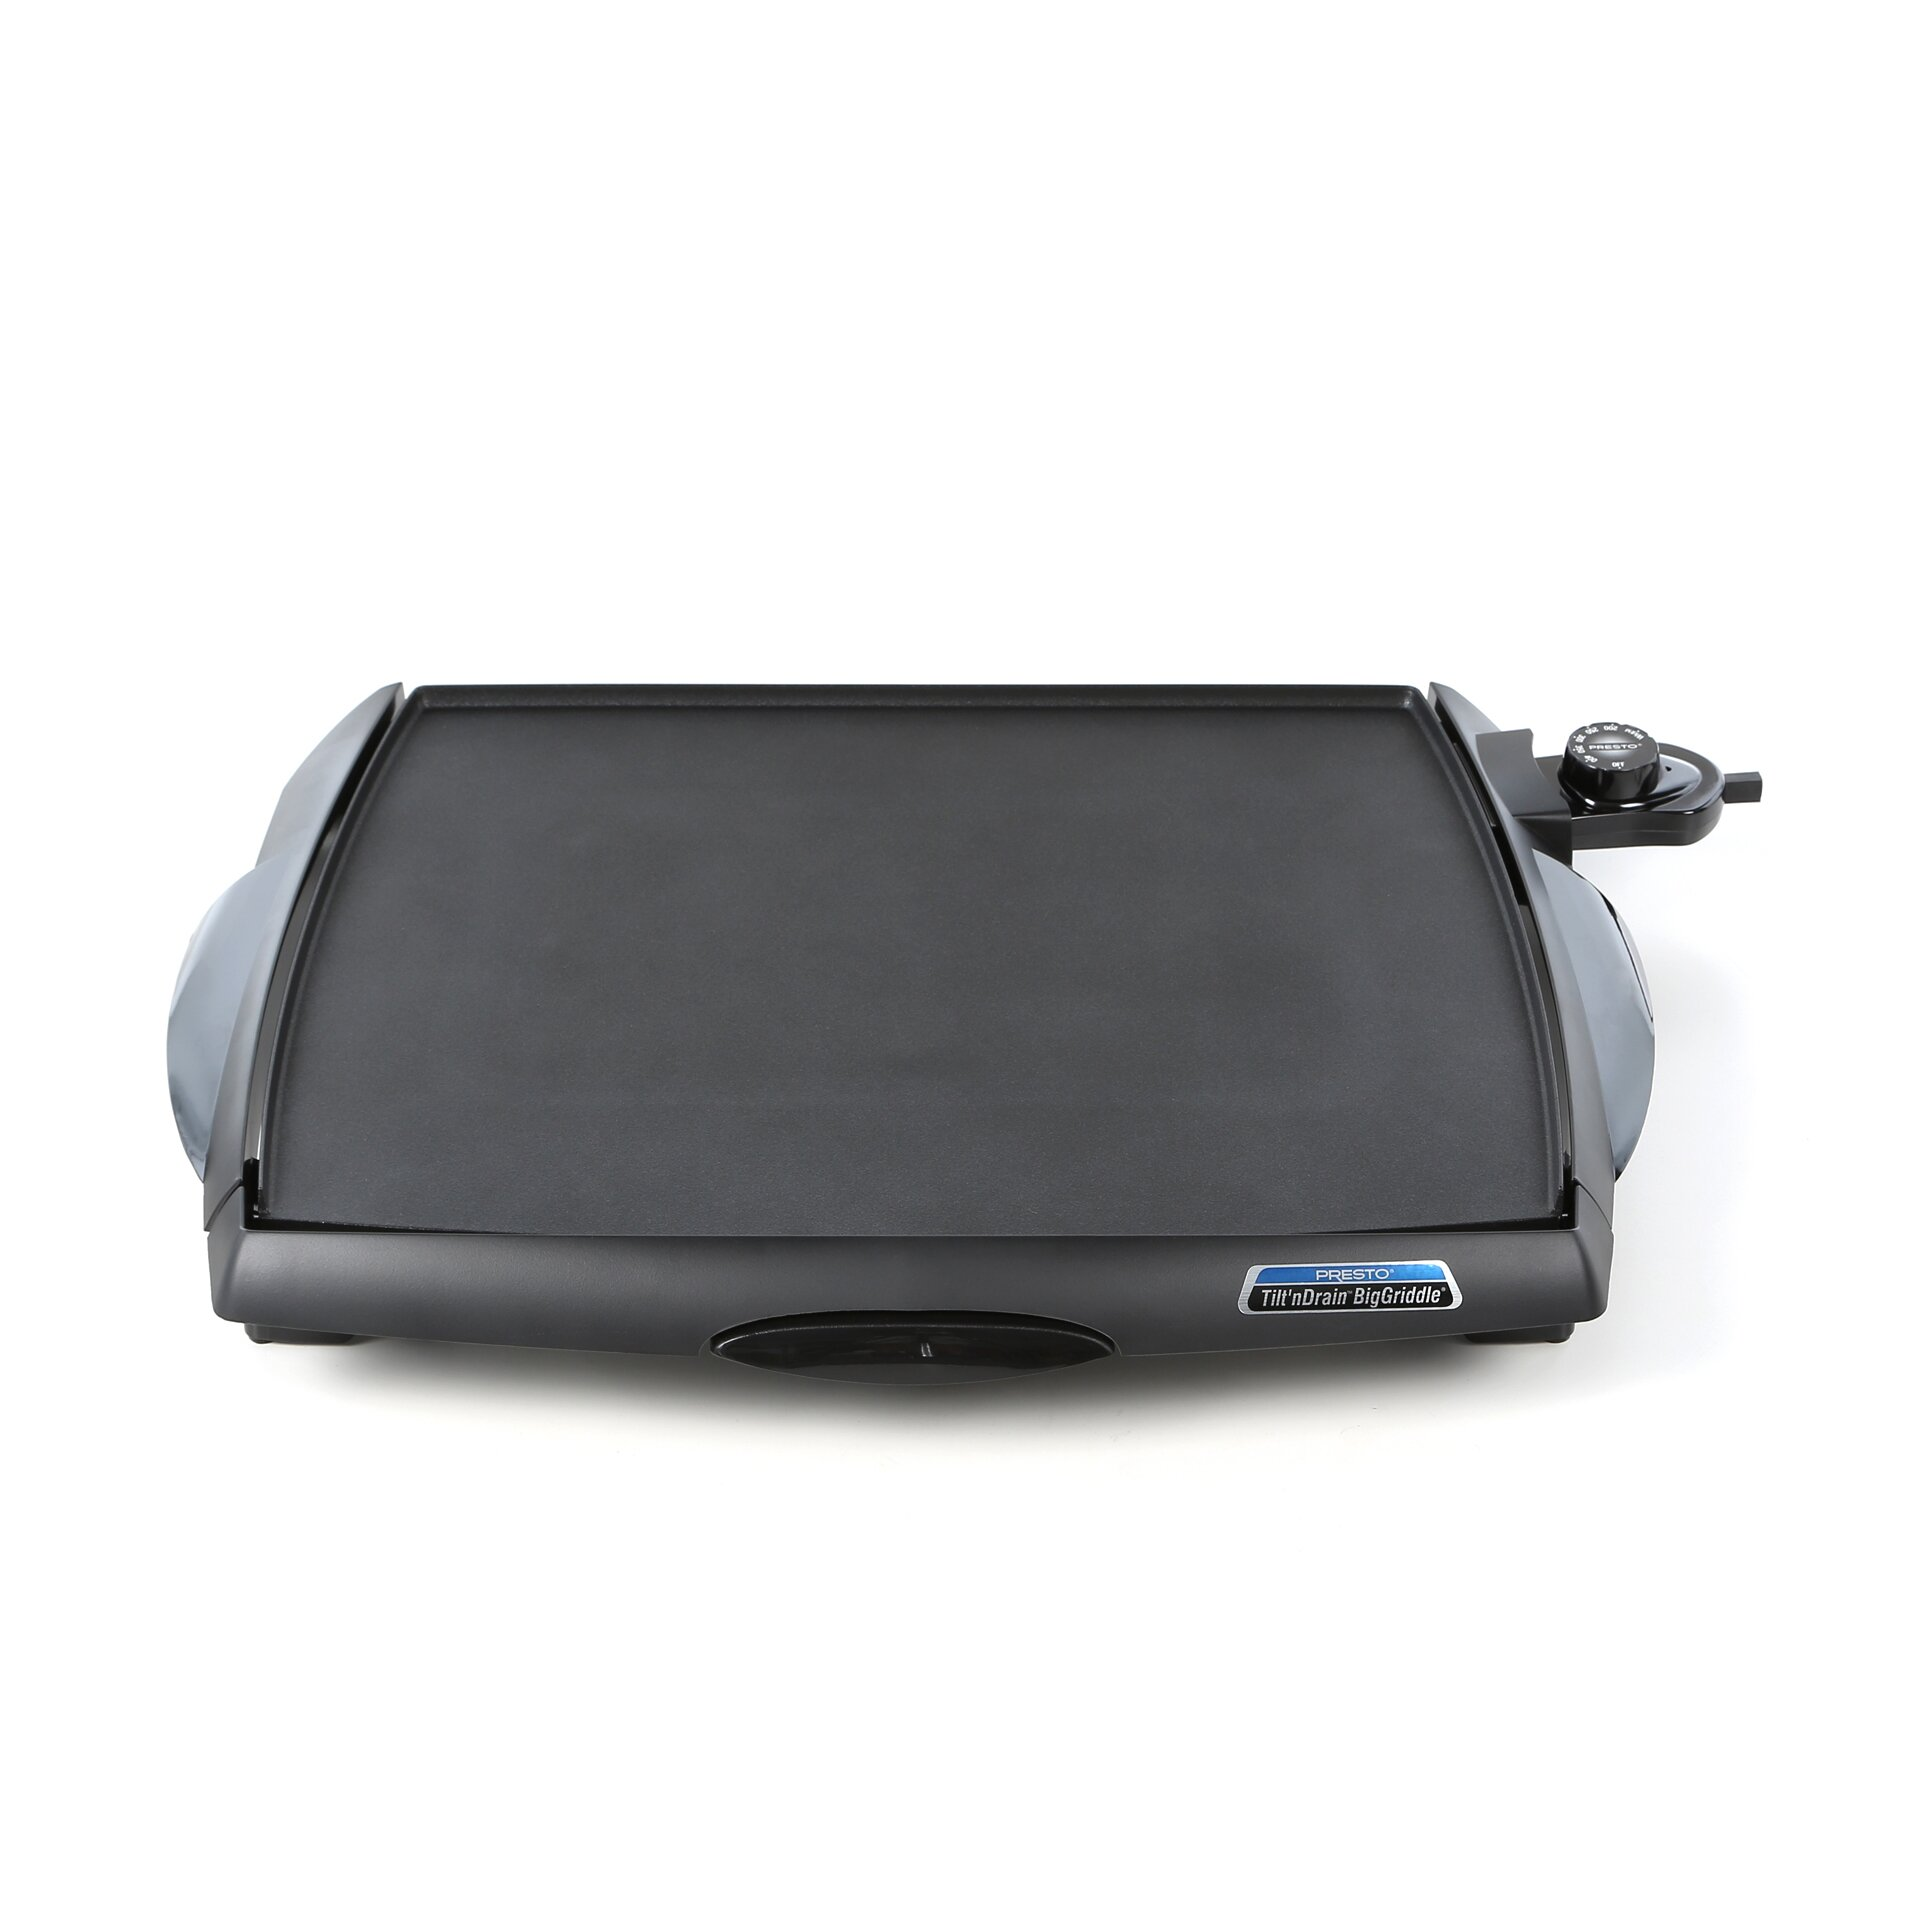 Presto Cool Touch Electric Tilt N' Drain Big Griddle ...